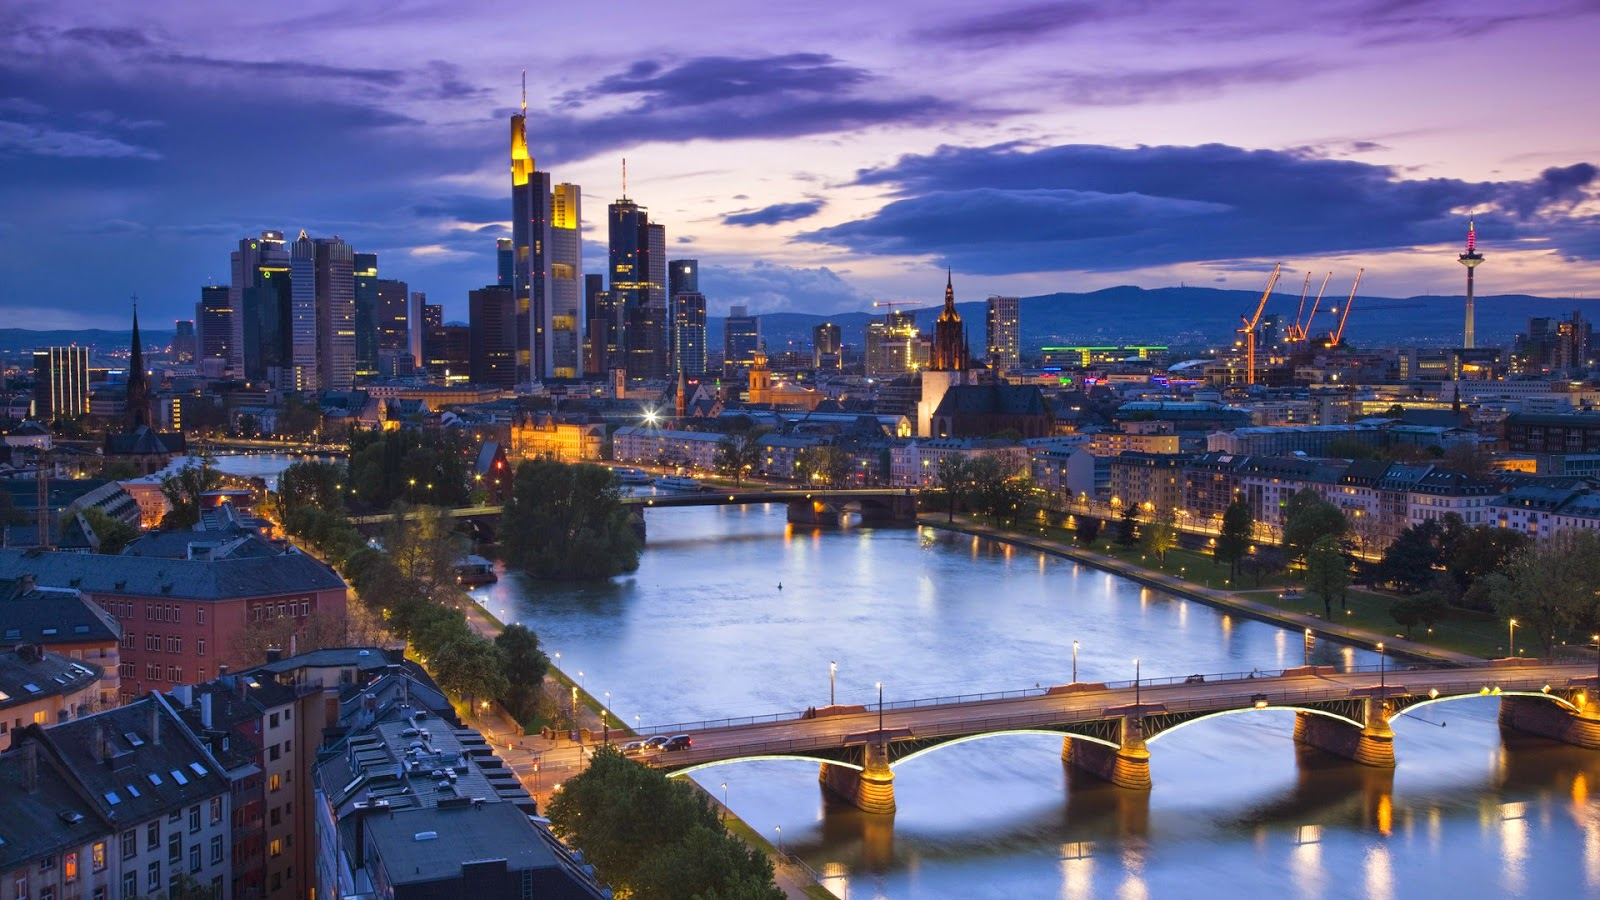 Frankfurt Germany wallpaper